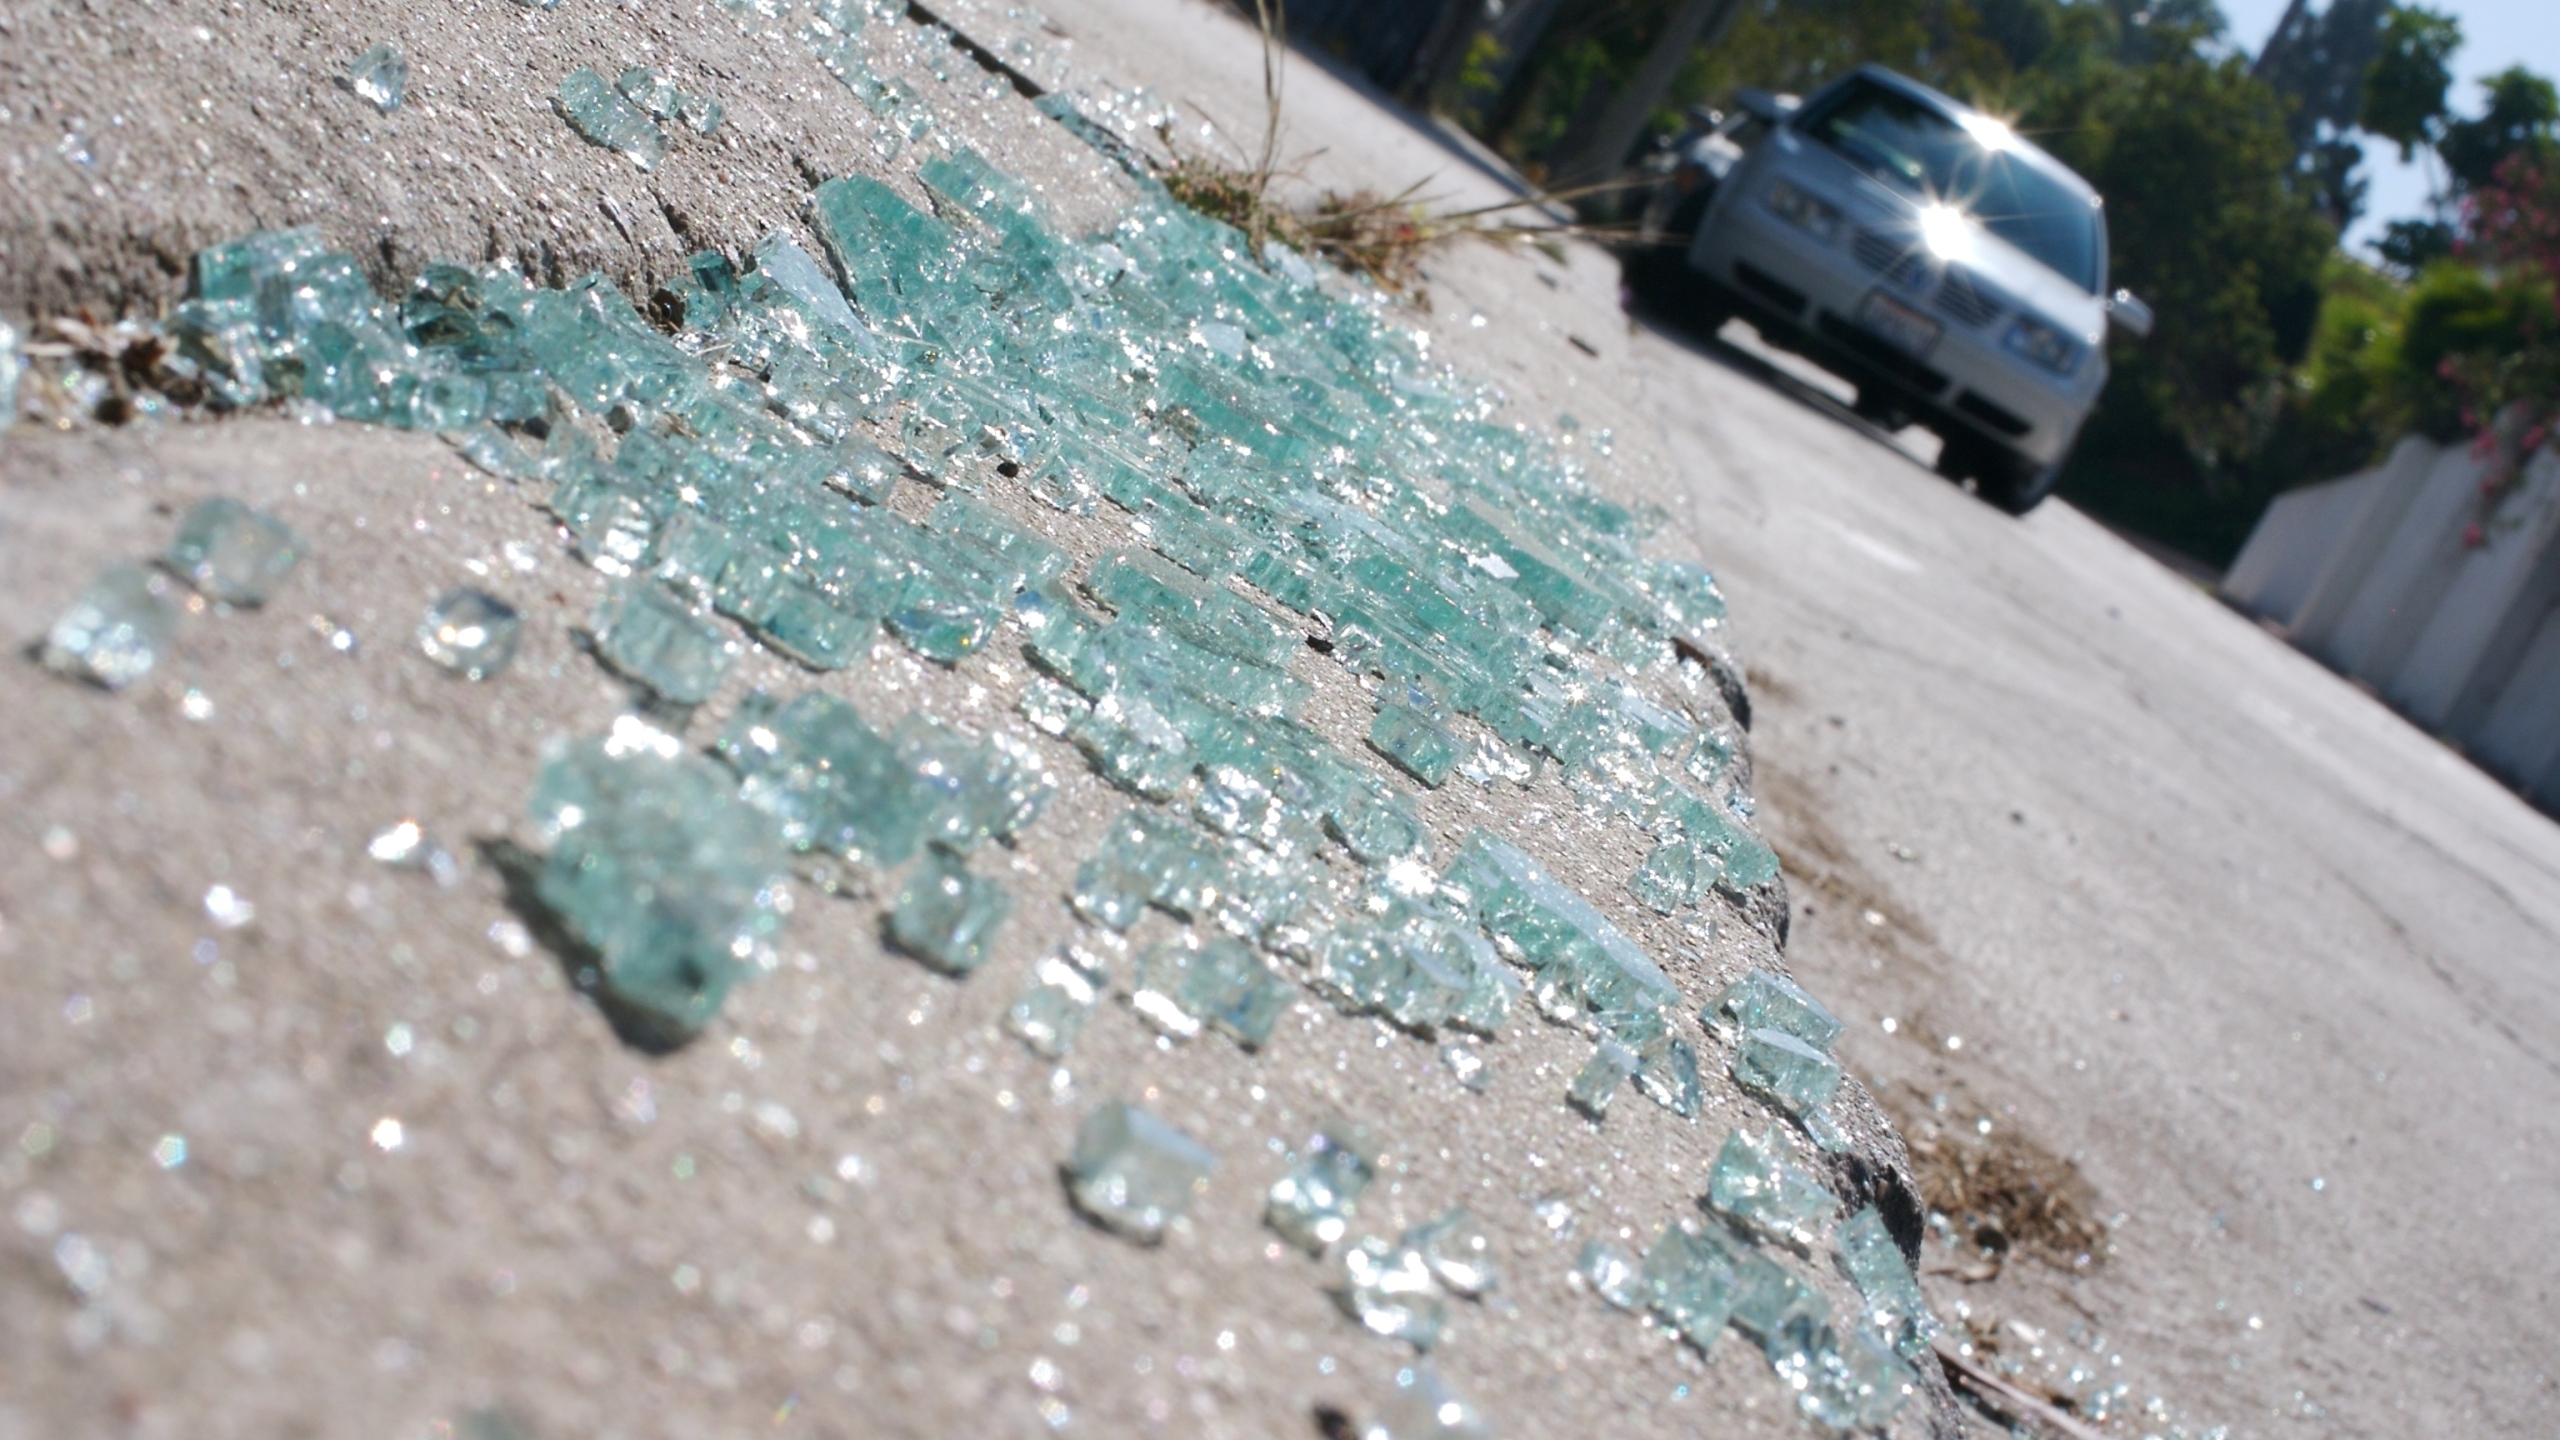 A file image shows broken glass on the curb with vehicles in the background. (Credit: iStock / Getty Images Plus)